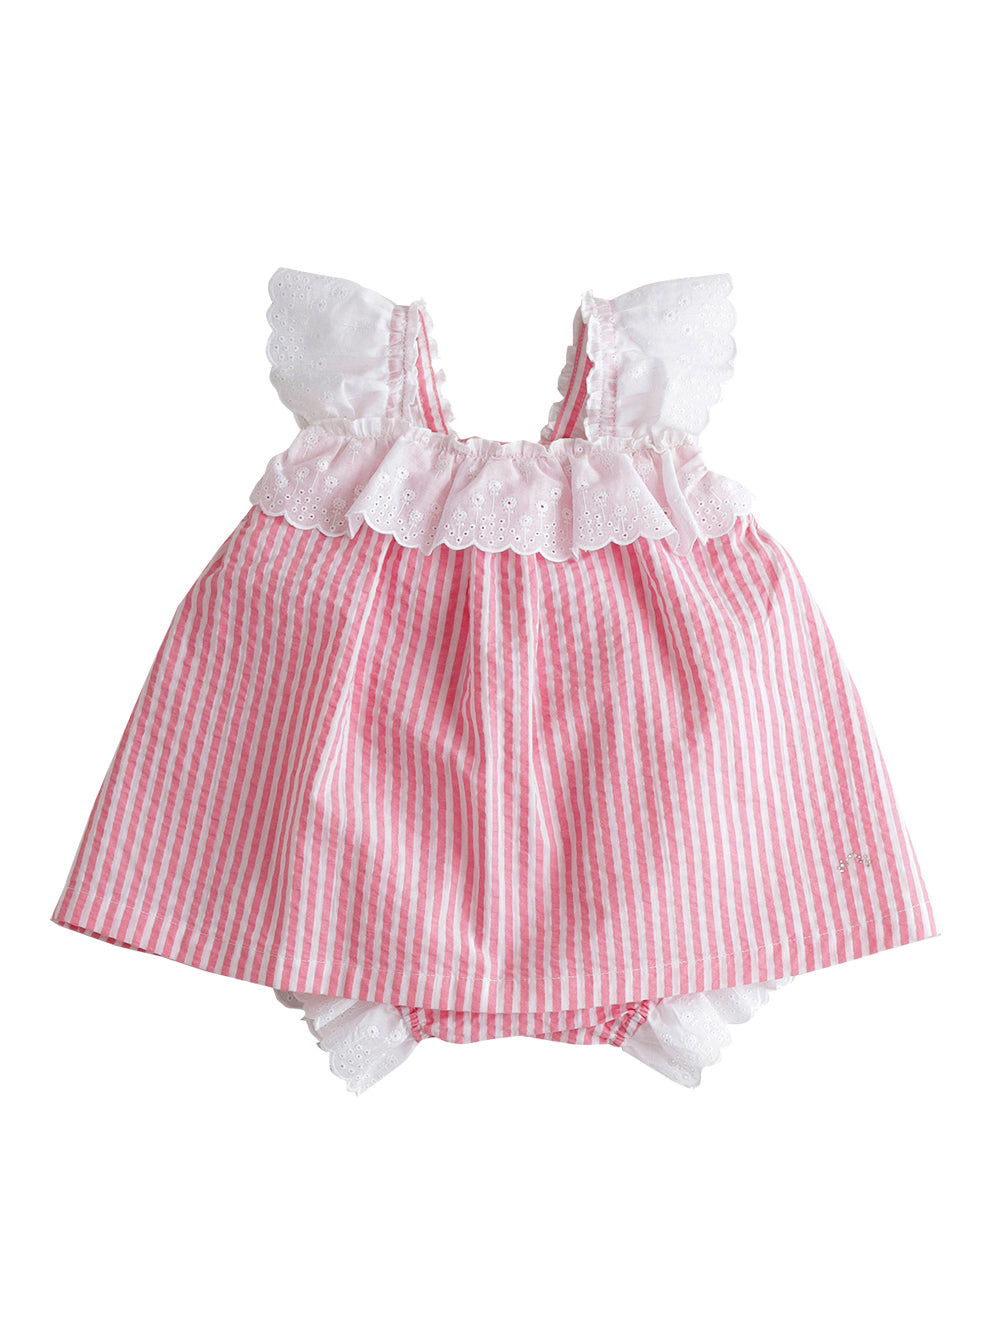 Seersucker Baby Dress